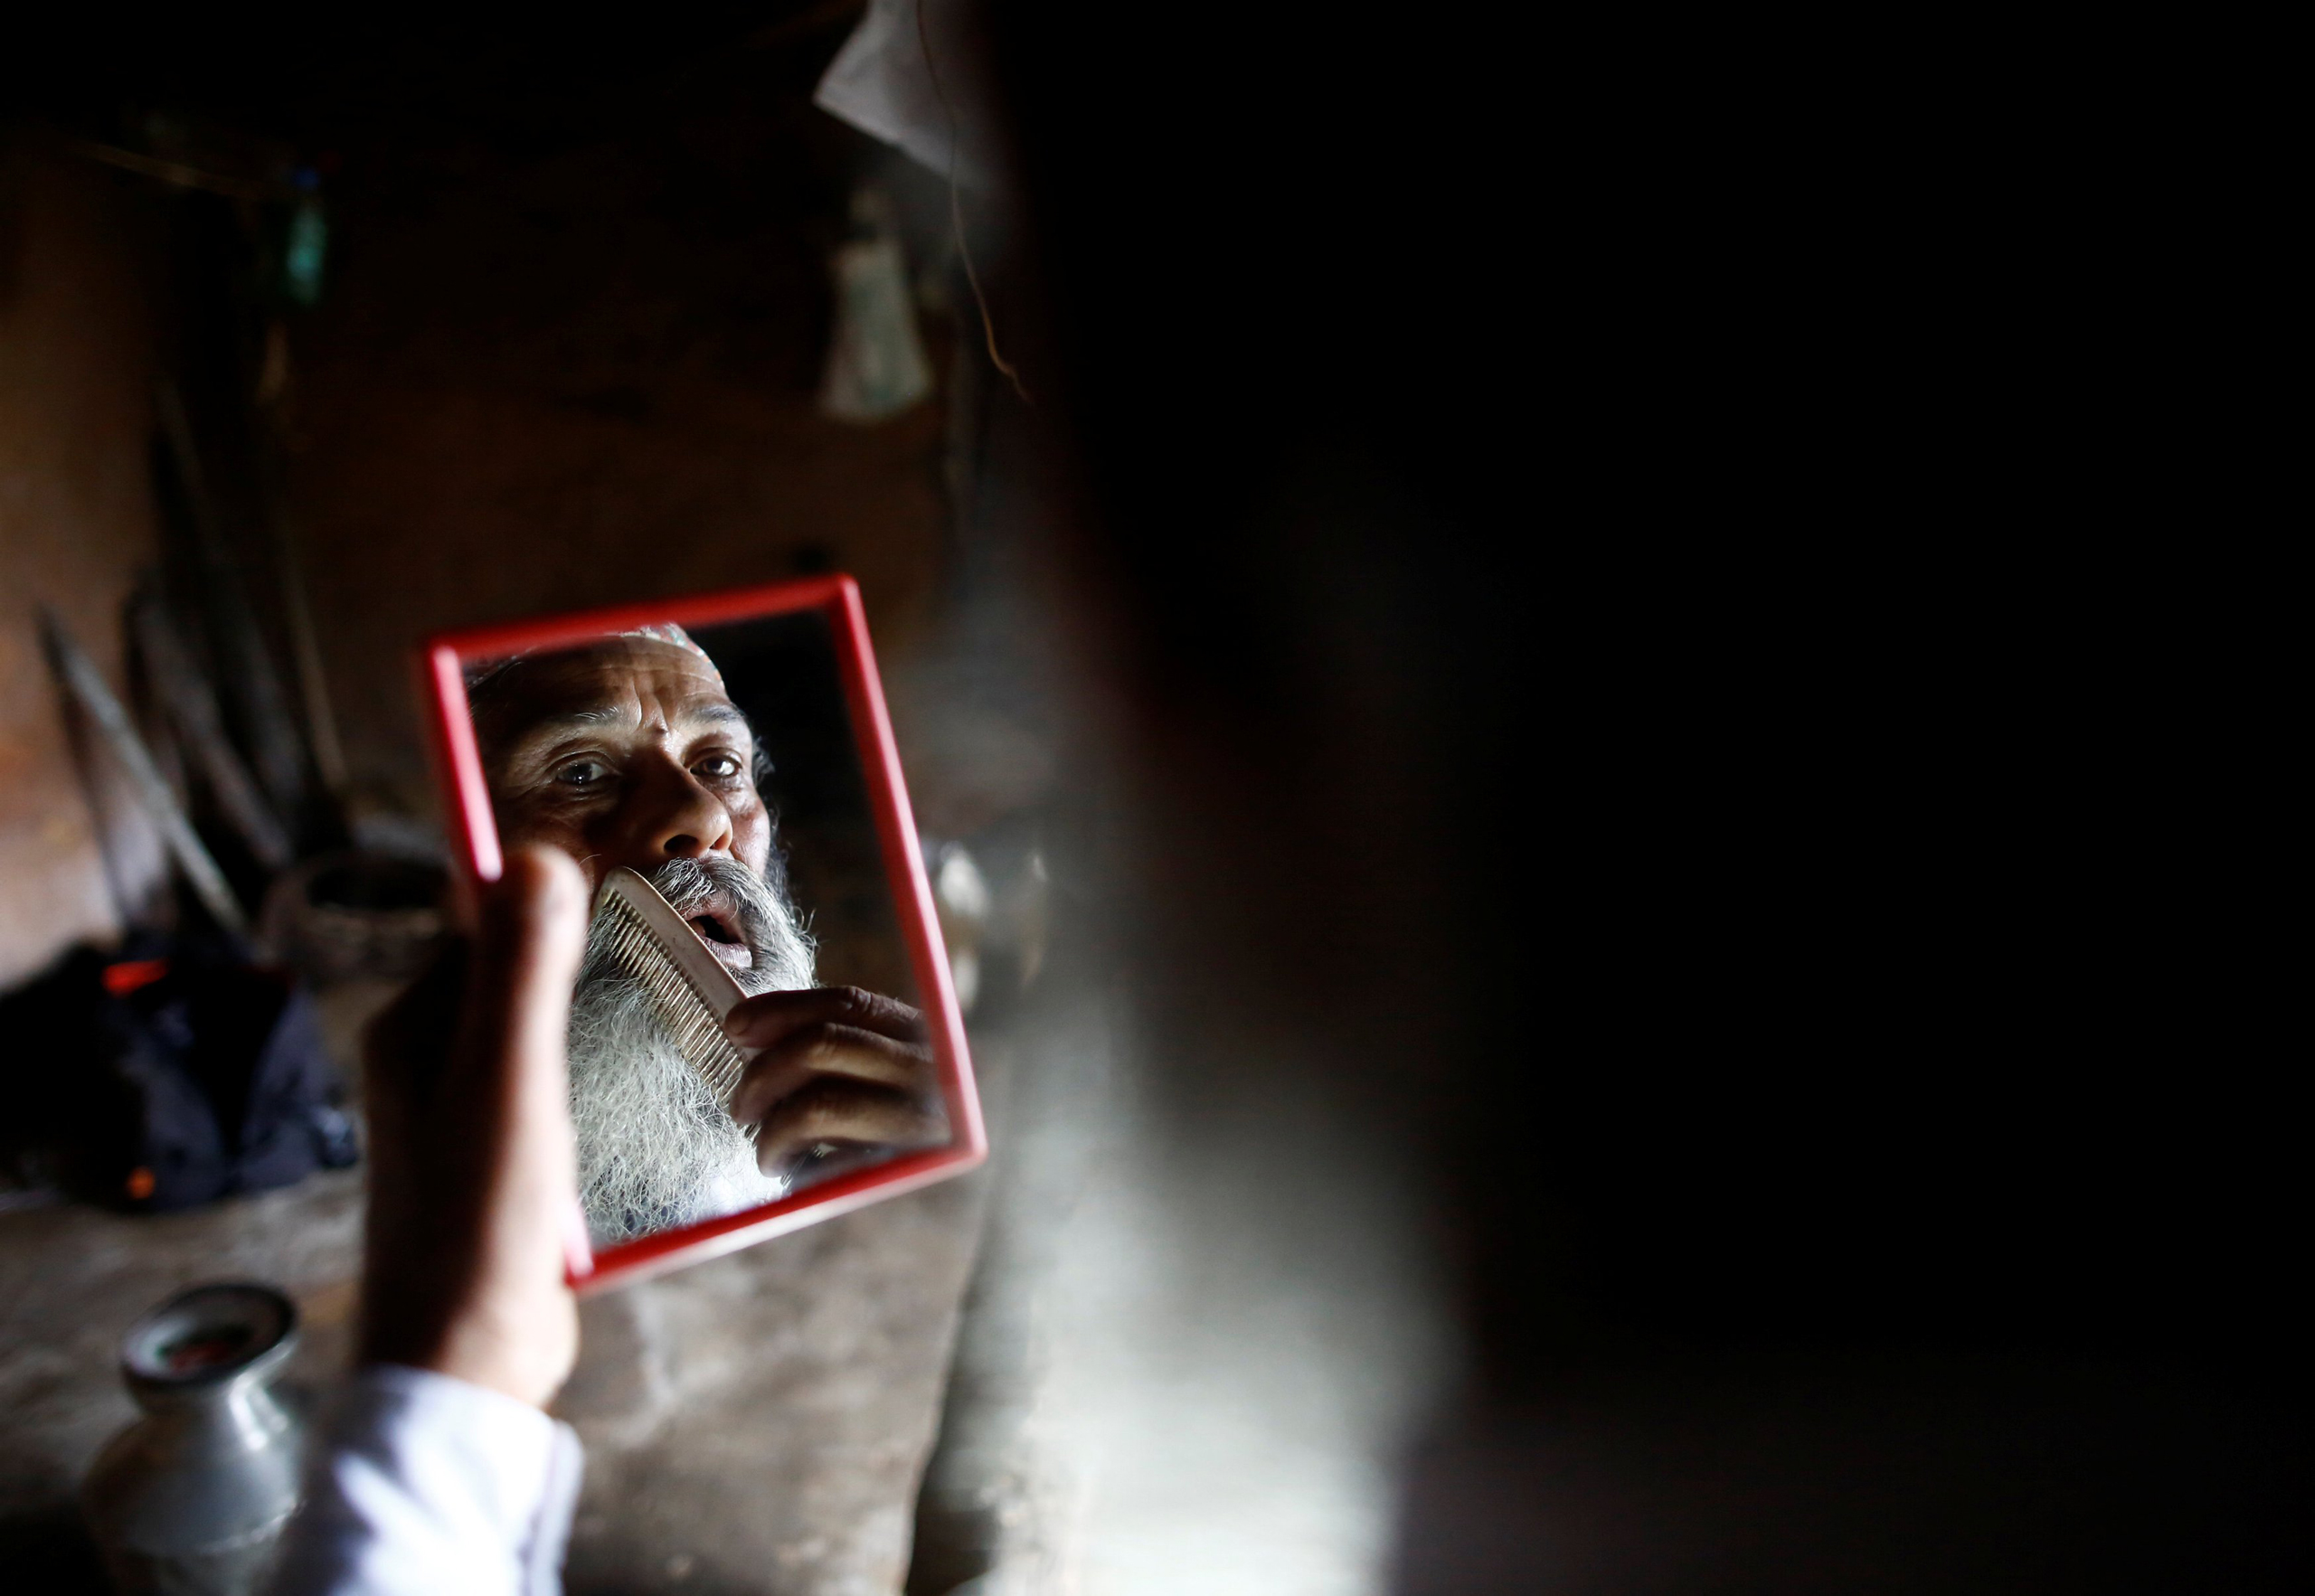 Durga Kami looks into a mirror as he combs his beard while getting ready for school in Syangja, Nepal, on June 5, 2016. Kami has promised his classmate that he will cut his beard off if he passes tenth grade.